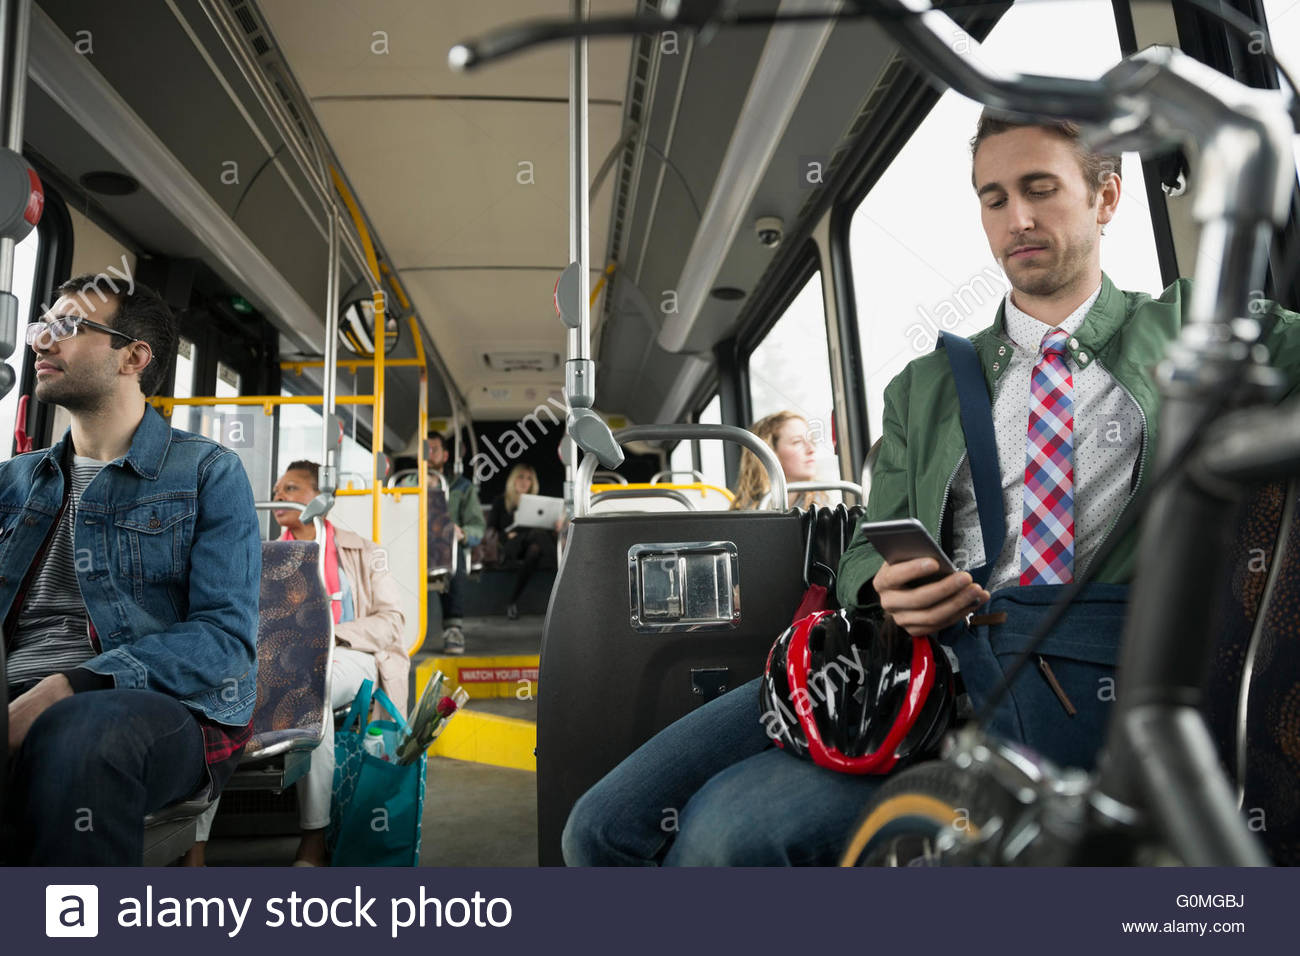 Businessman with bicycle texting on bus - Stock Image